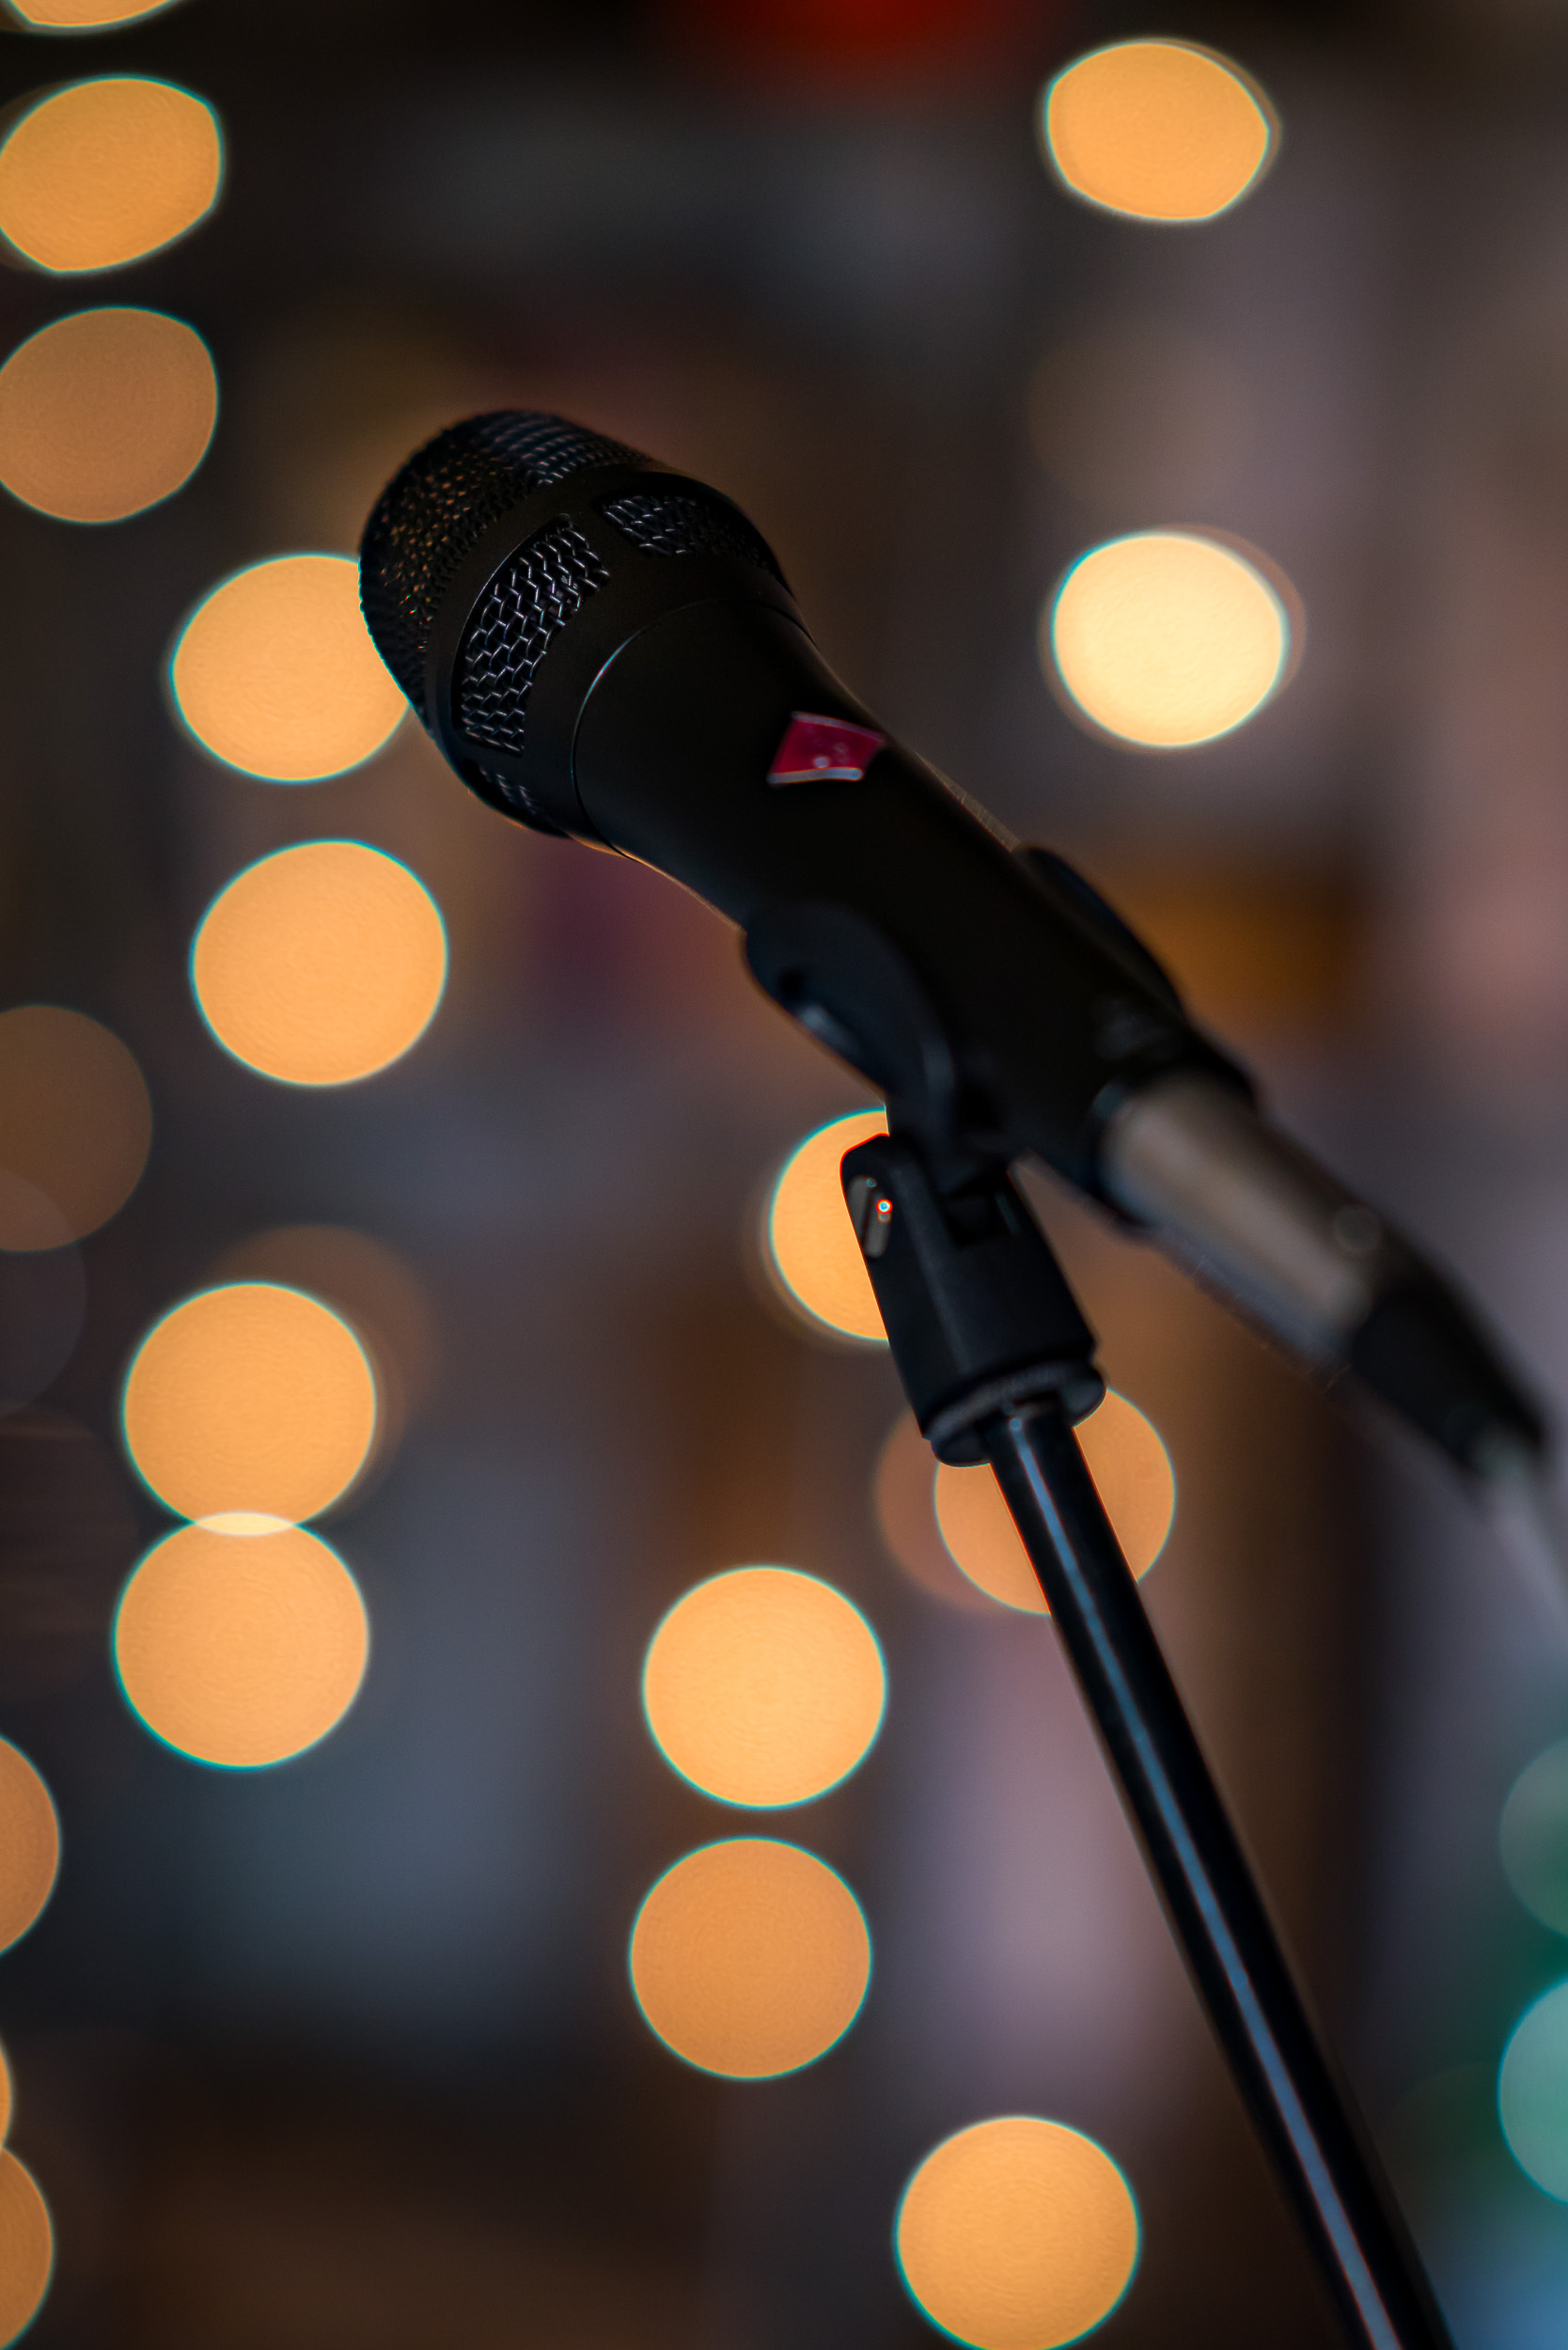 Intimate concert by a corporate photographer